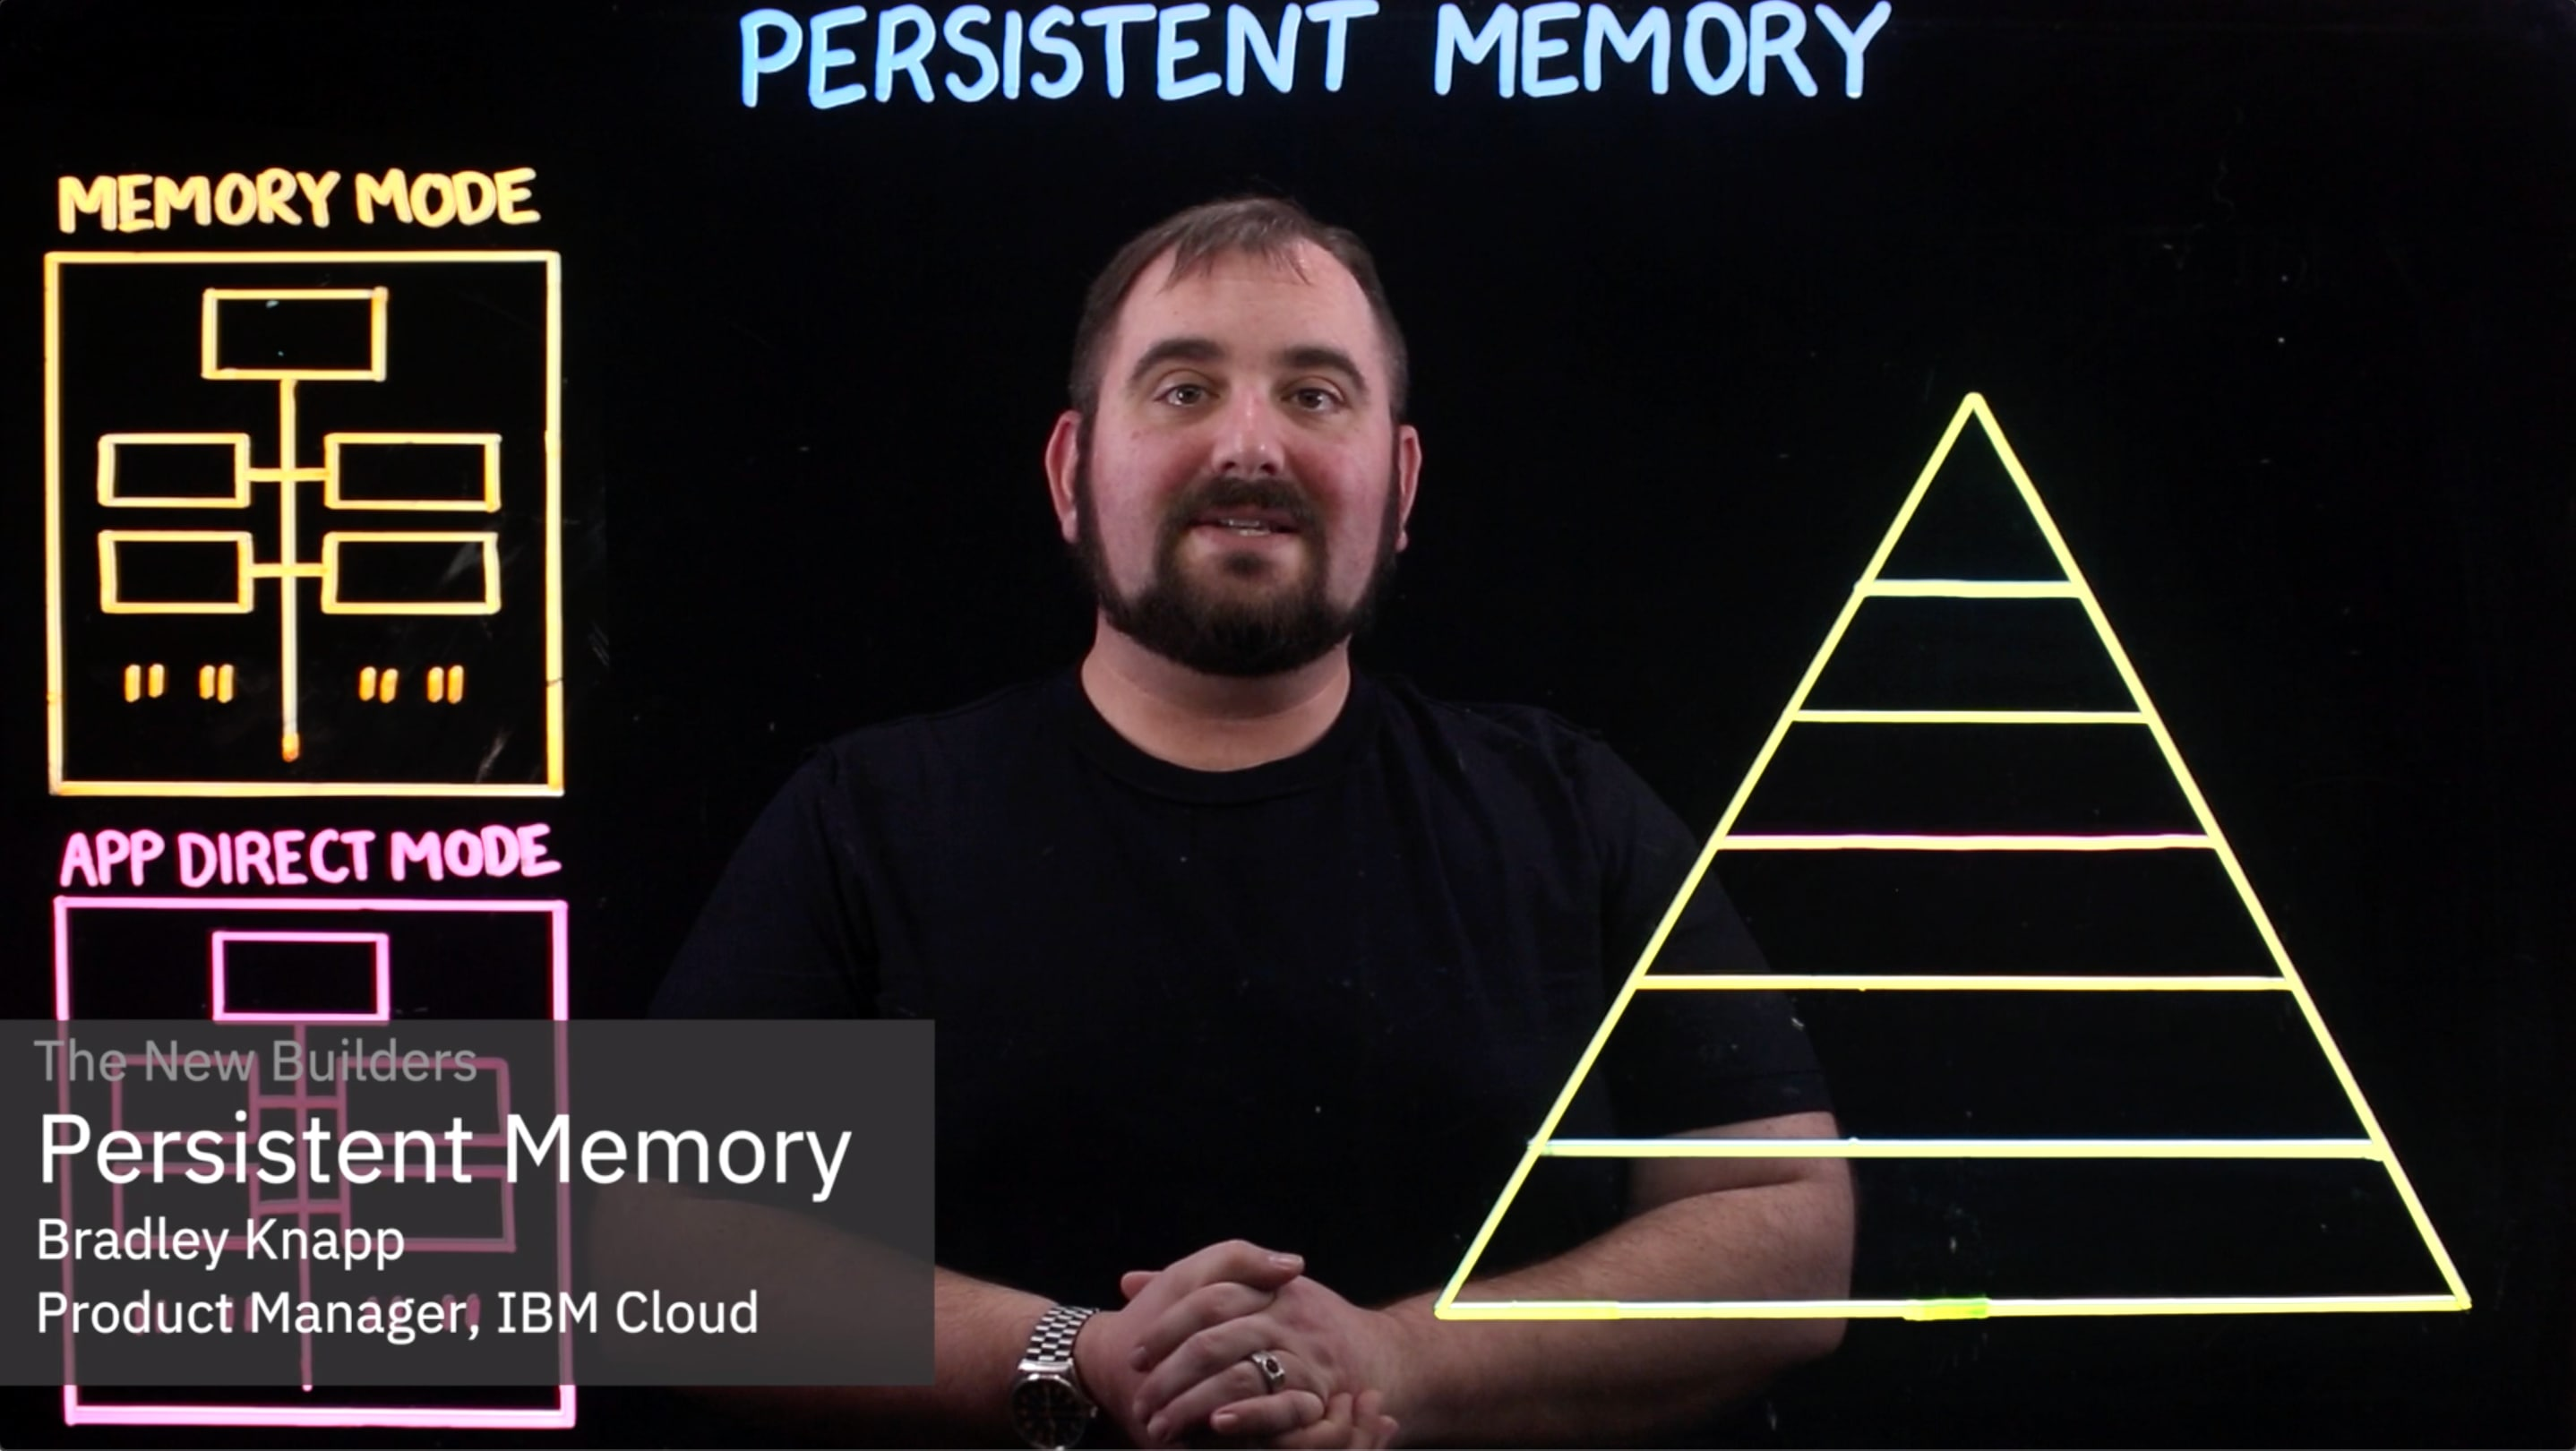 What is persistent memory?